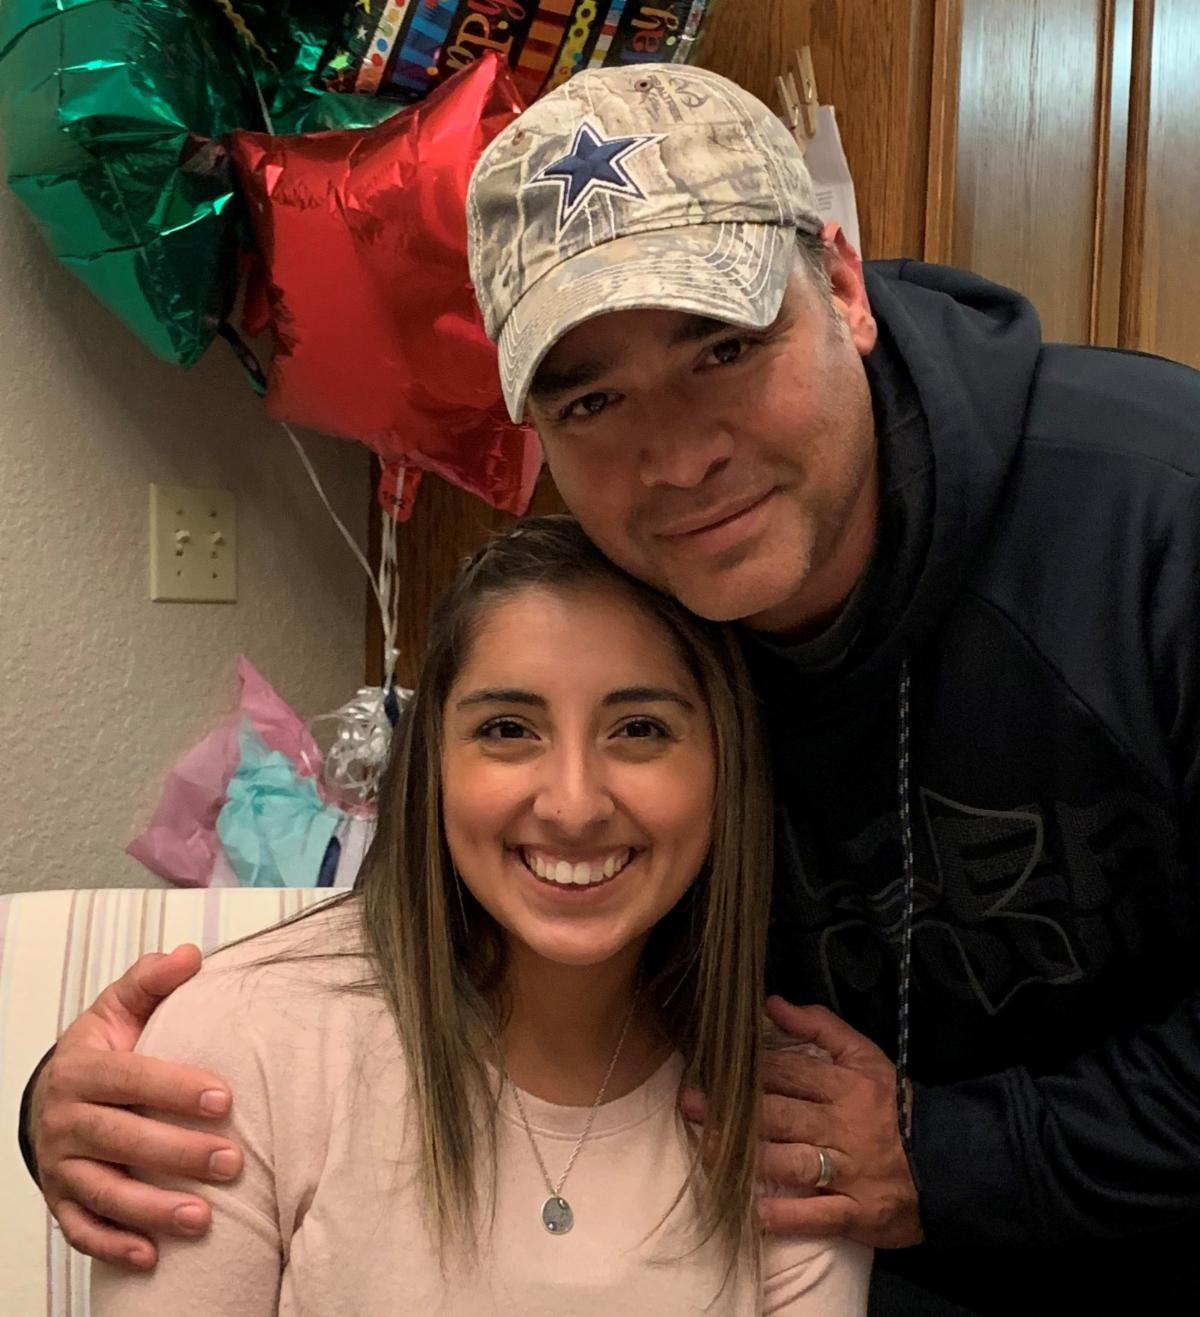 Texas A&M University-San Antonio mourns with student whose father died after COVID-19 diagnosis